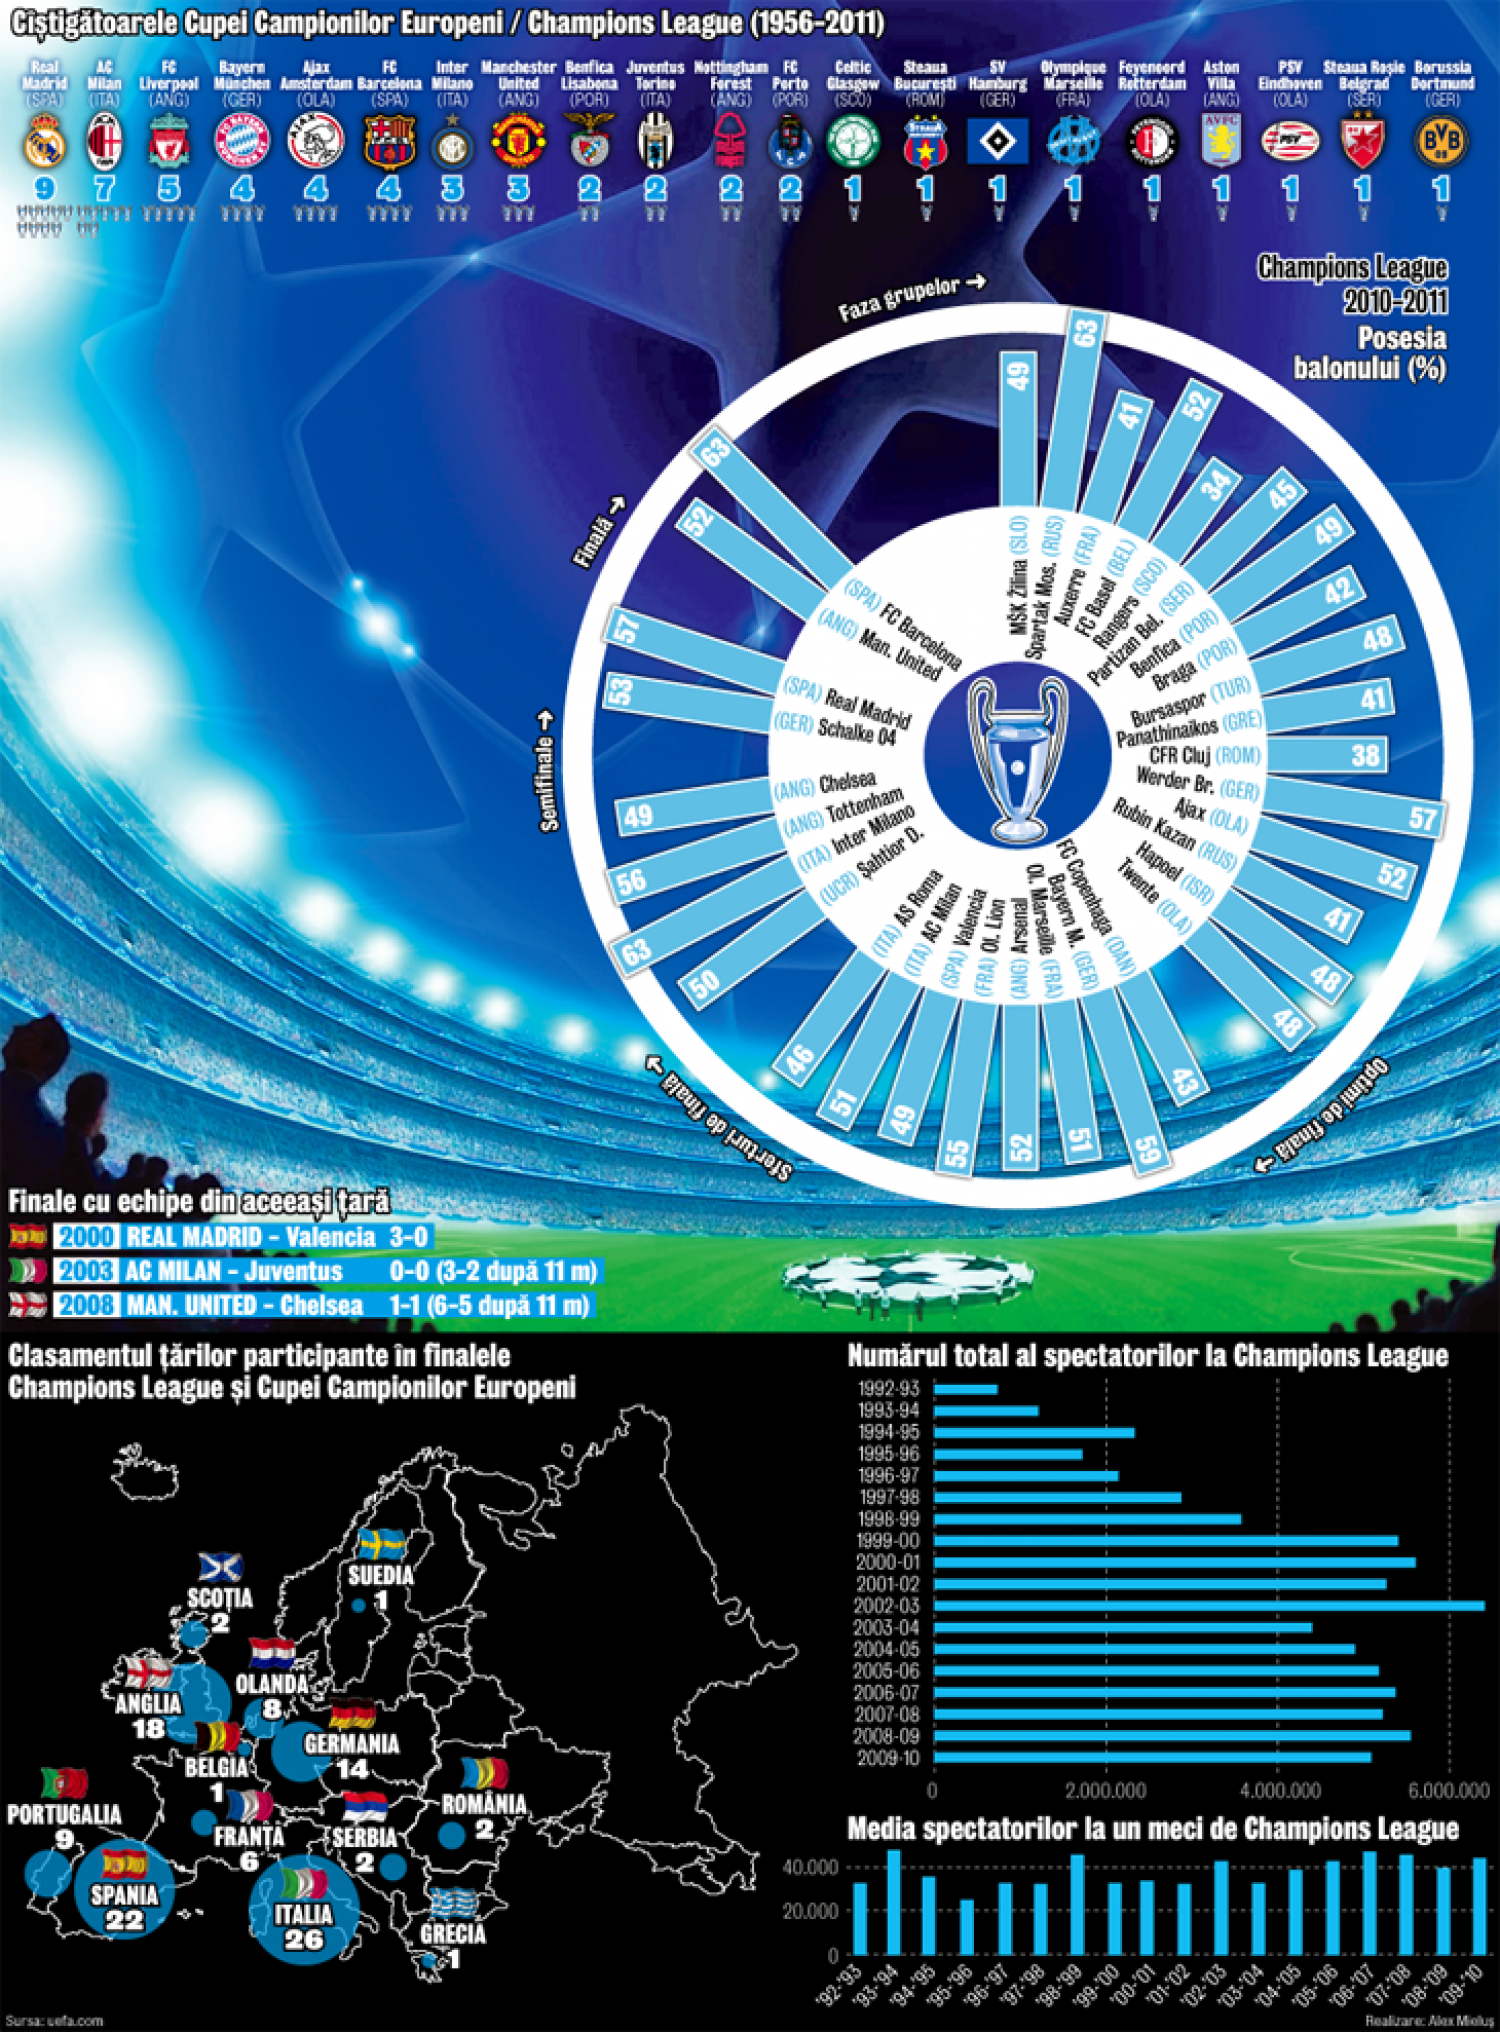 Champions League 2010-2011 Infographic